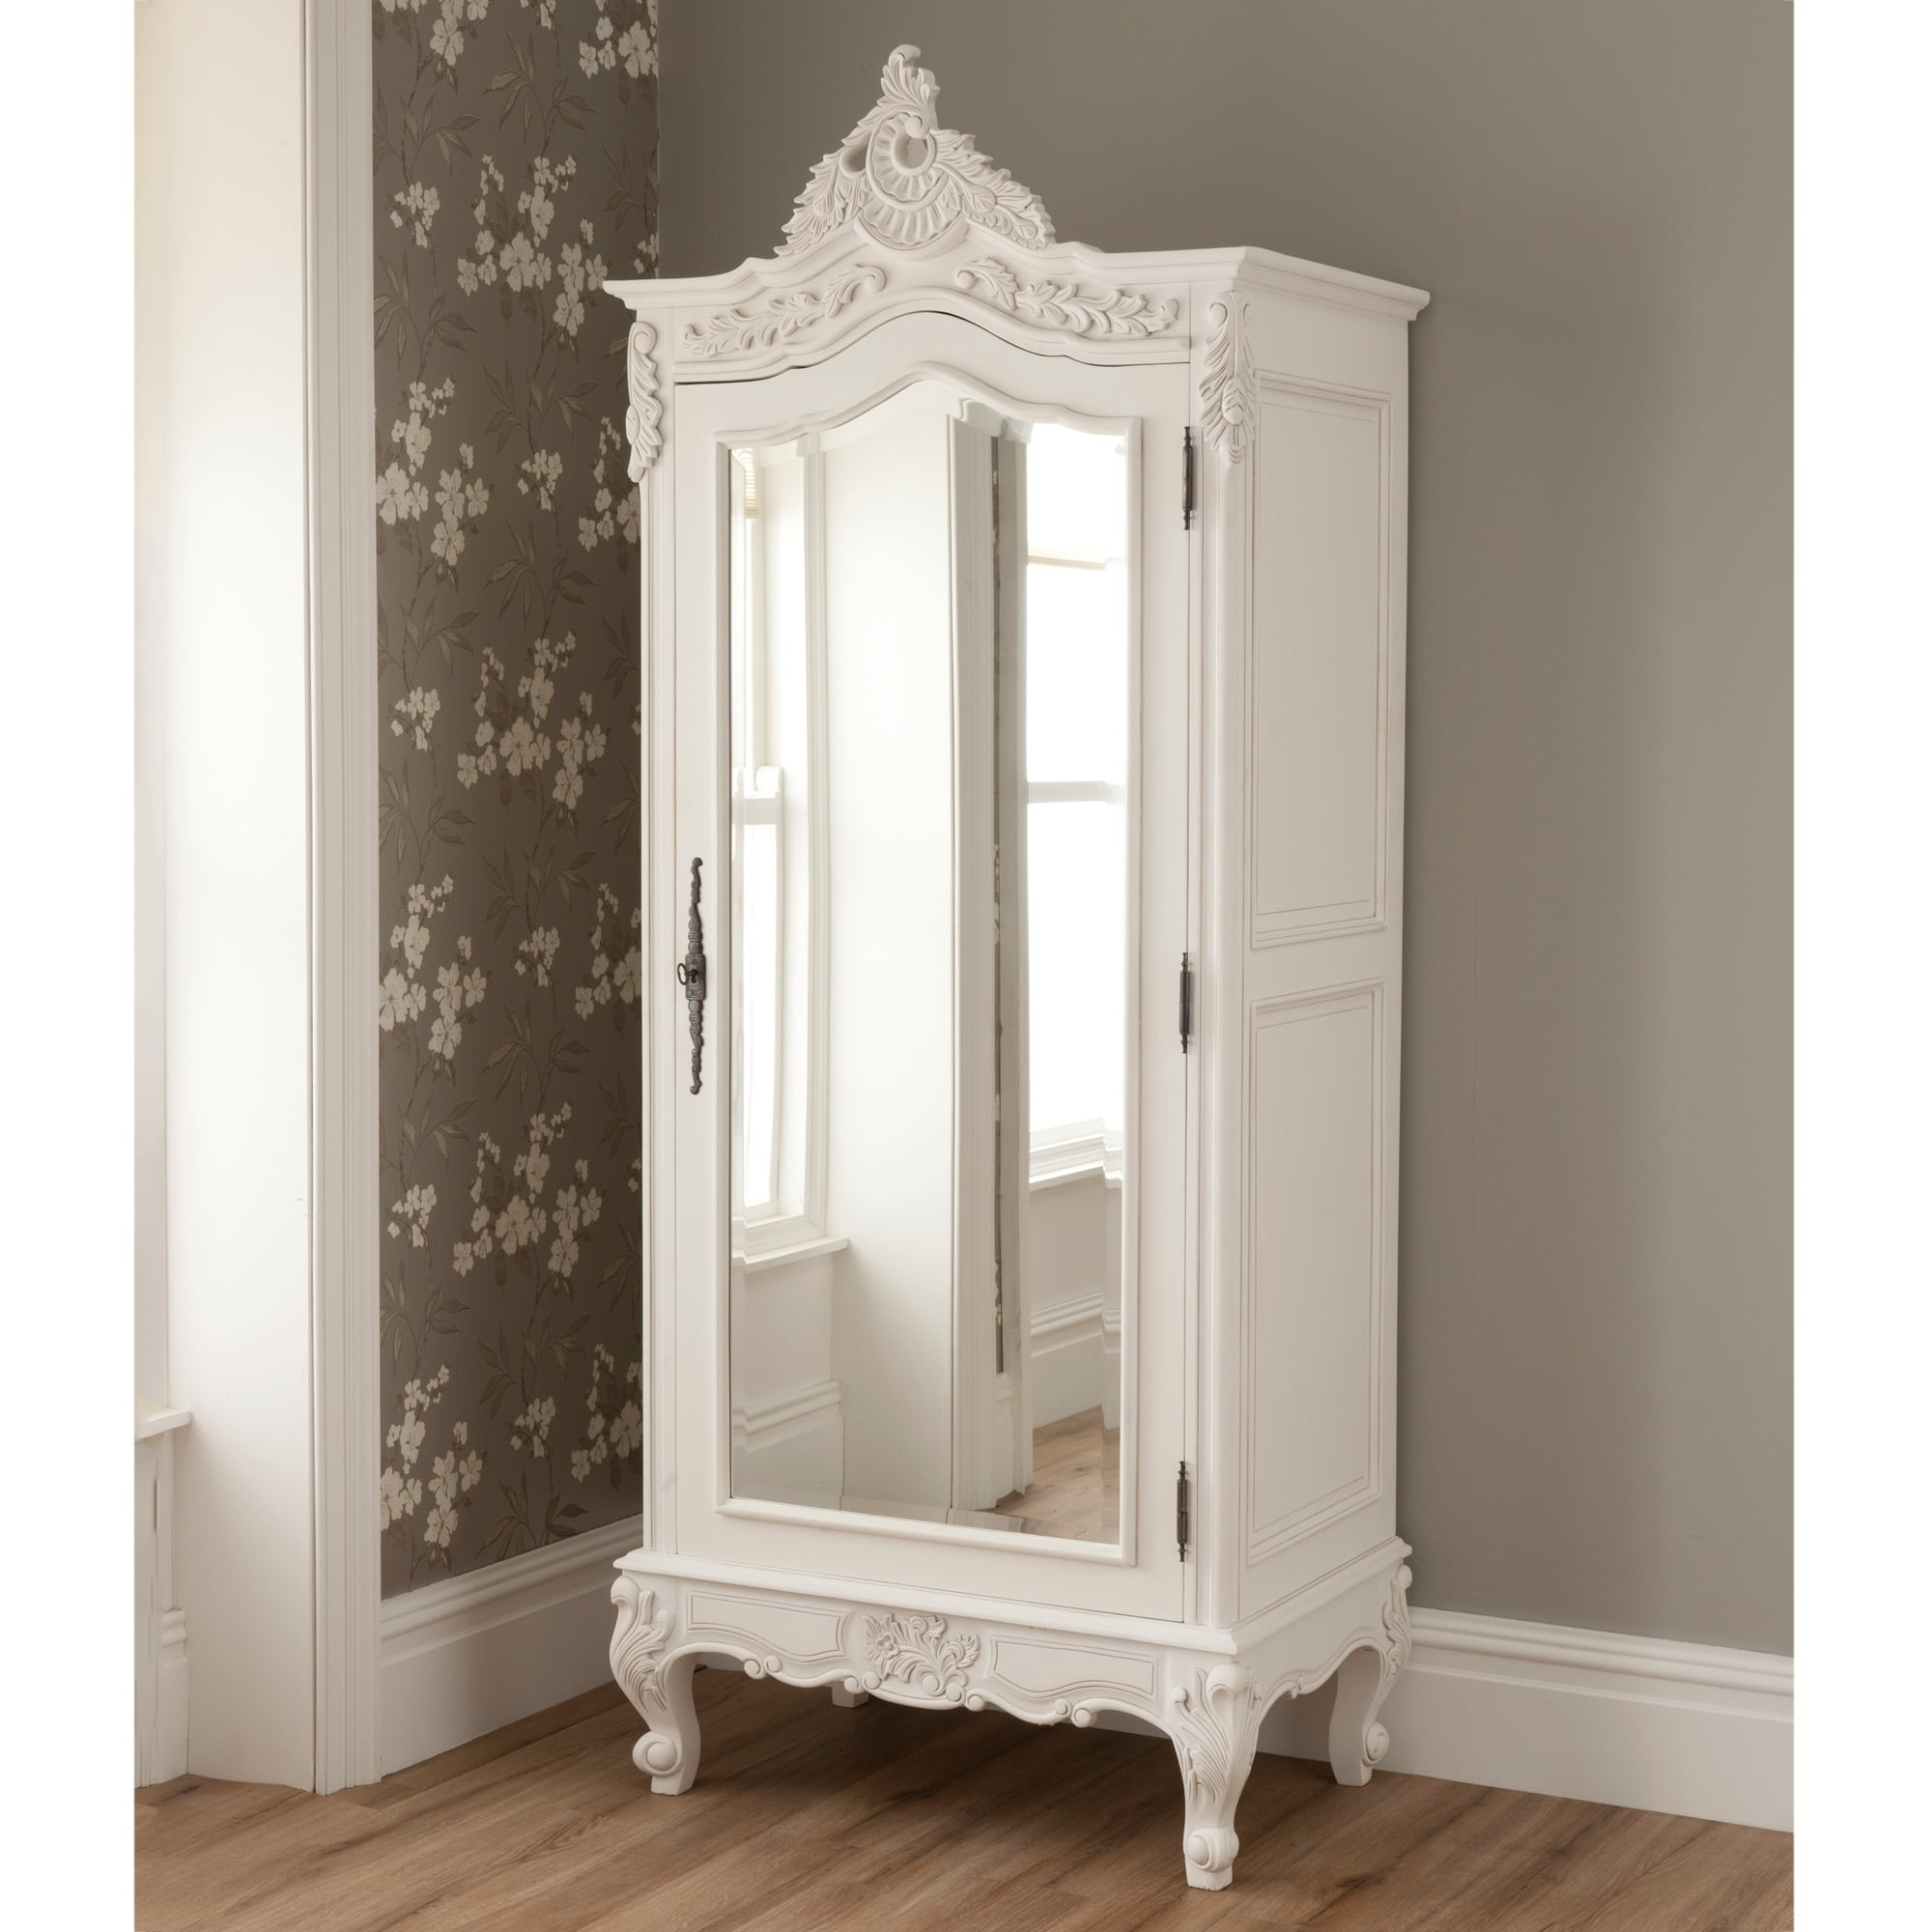 la rochelle mirrored antique french 1 door wardrobe. Black Bedroom Furniture Sets. Home Design Ideas